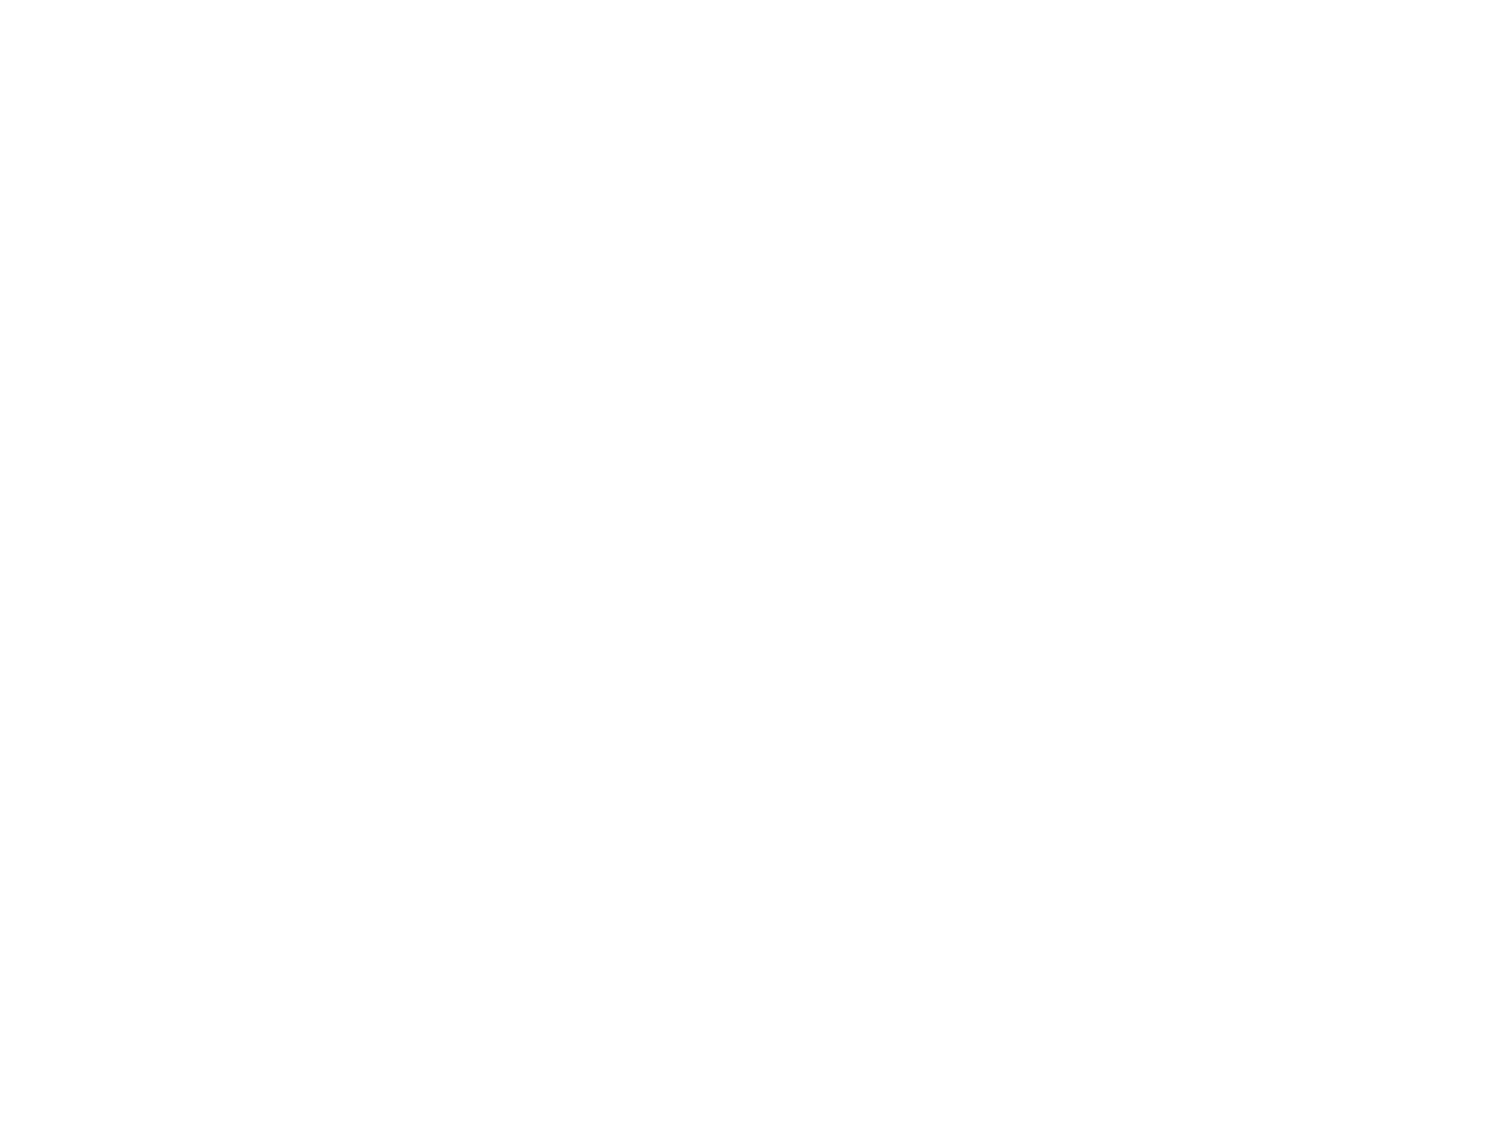 Jennifer Grote Coaching